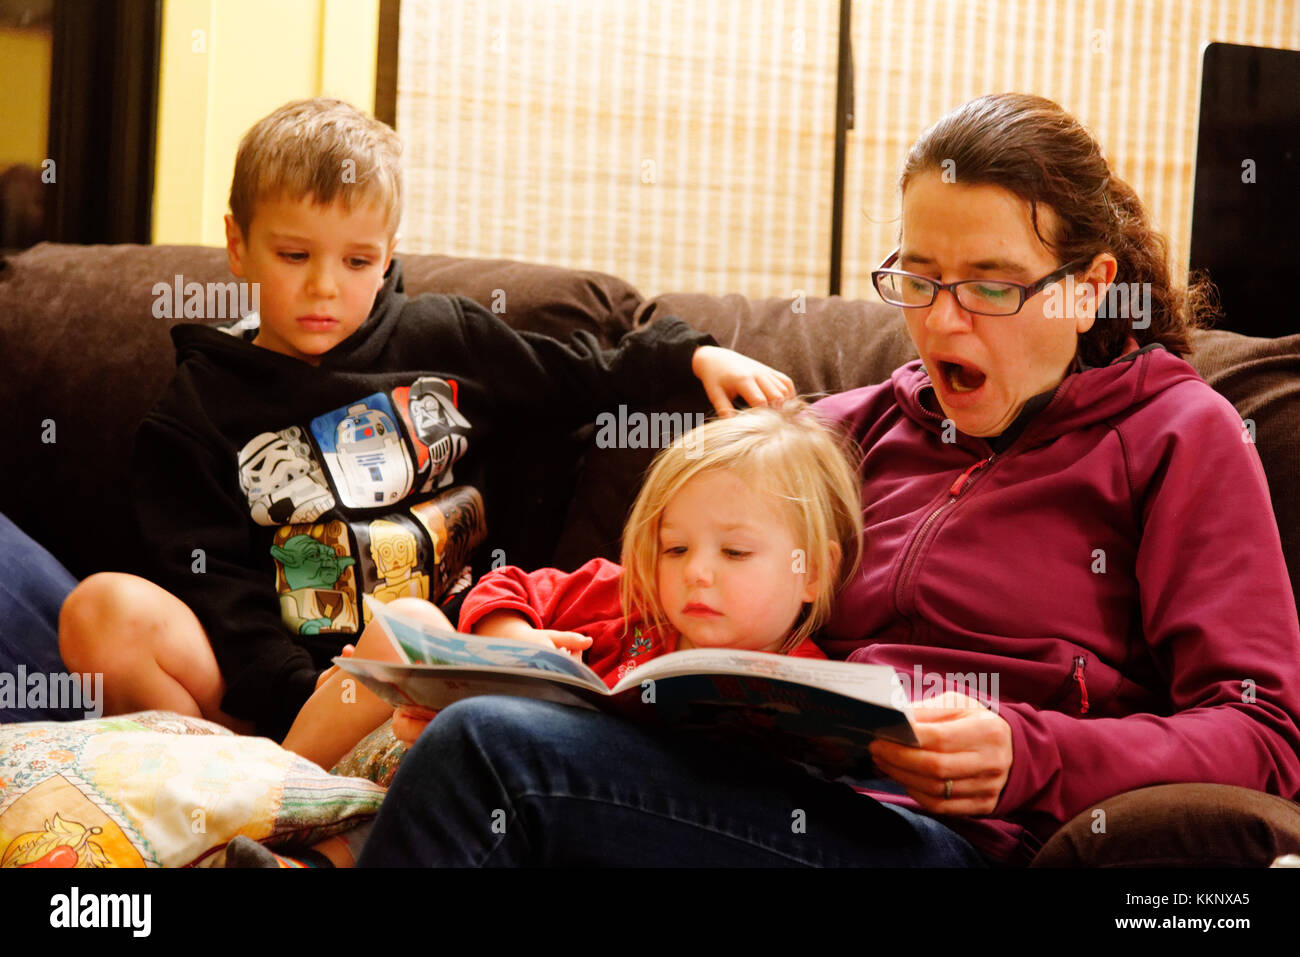 A tired mother yawning while reading out loud to her young children (5 and 3 yrs old) - Stock Image